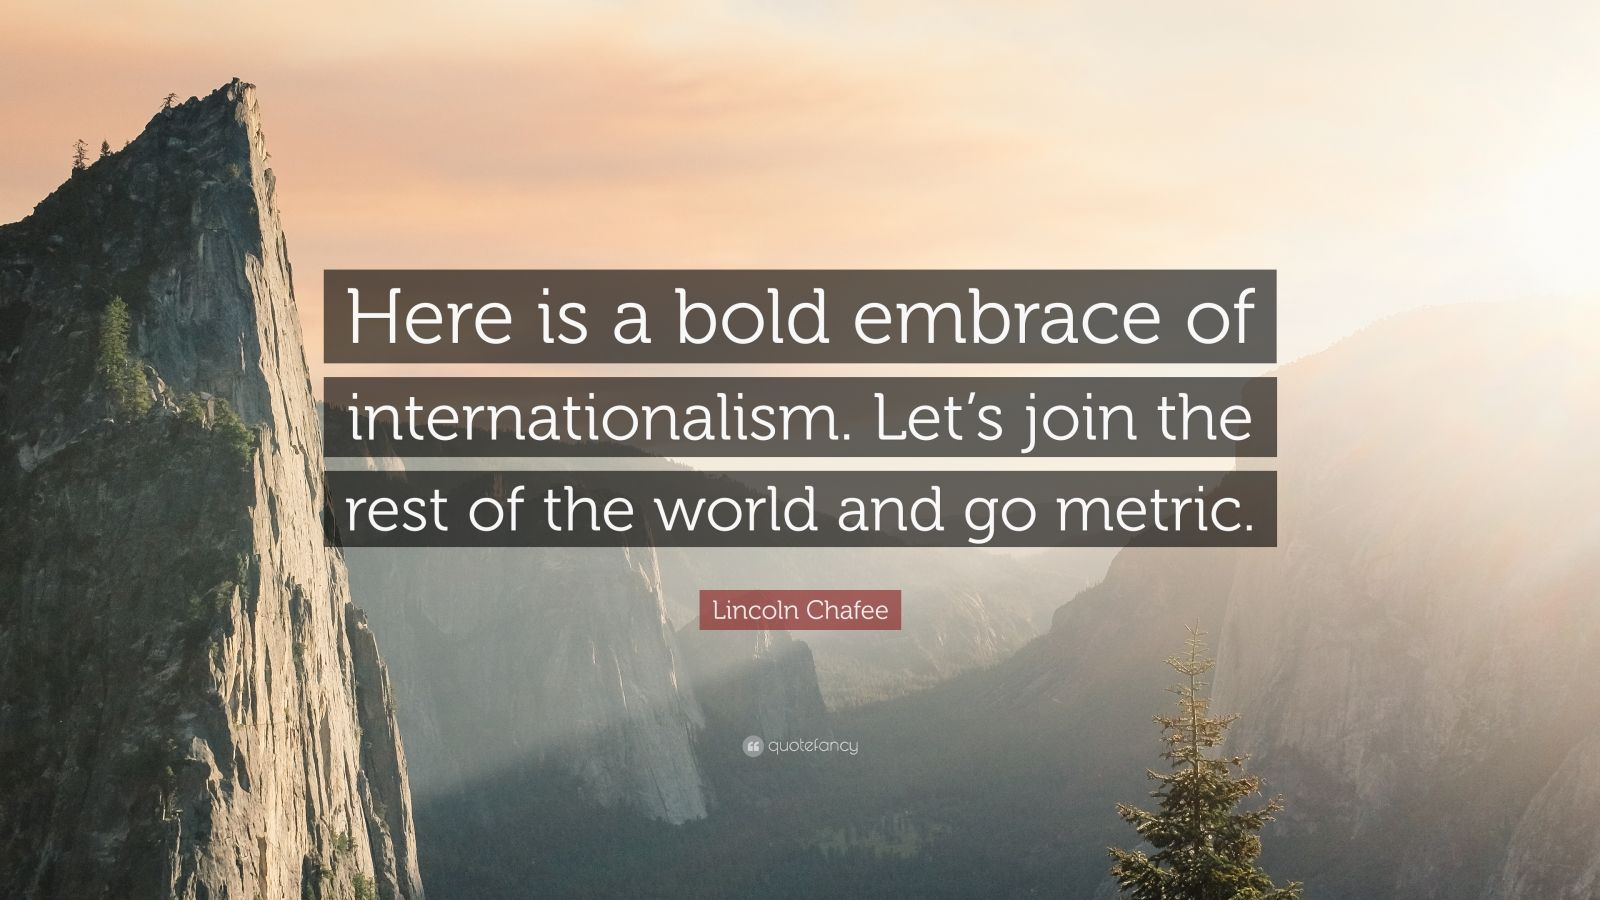 """Lincoln Chafee Quote: """"Here is a bold embrace of internationalism. Let's join the rest of the world and go metric."""""""